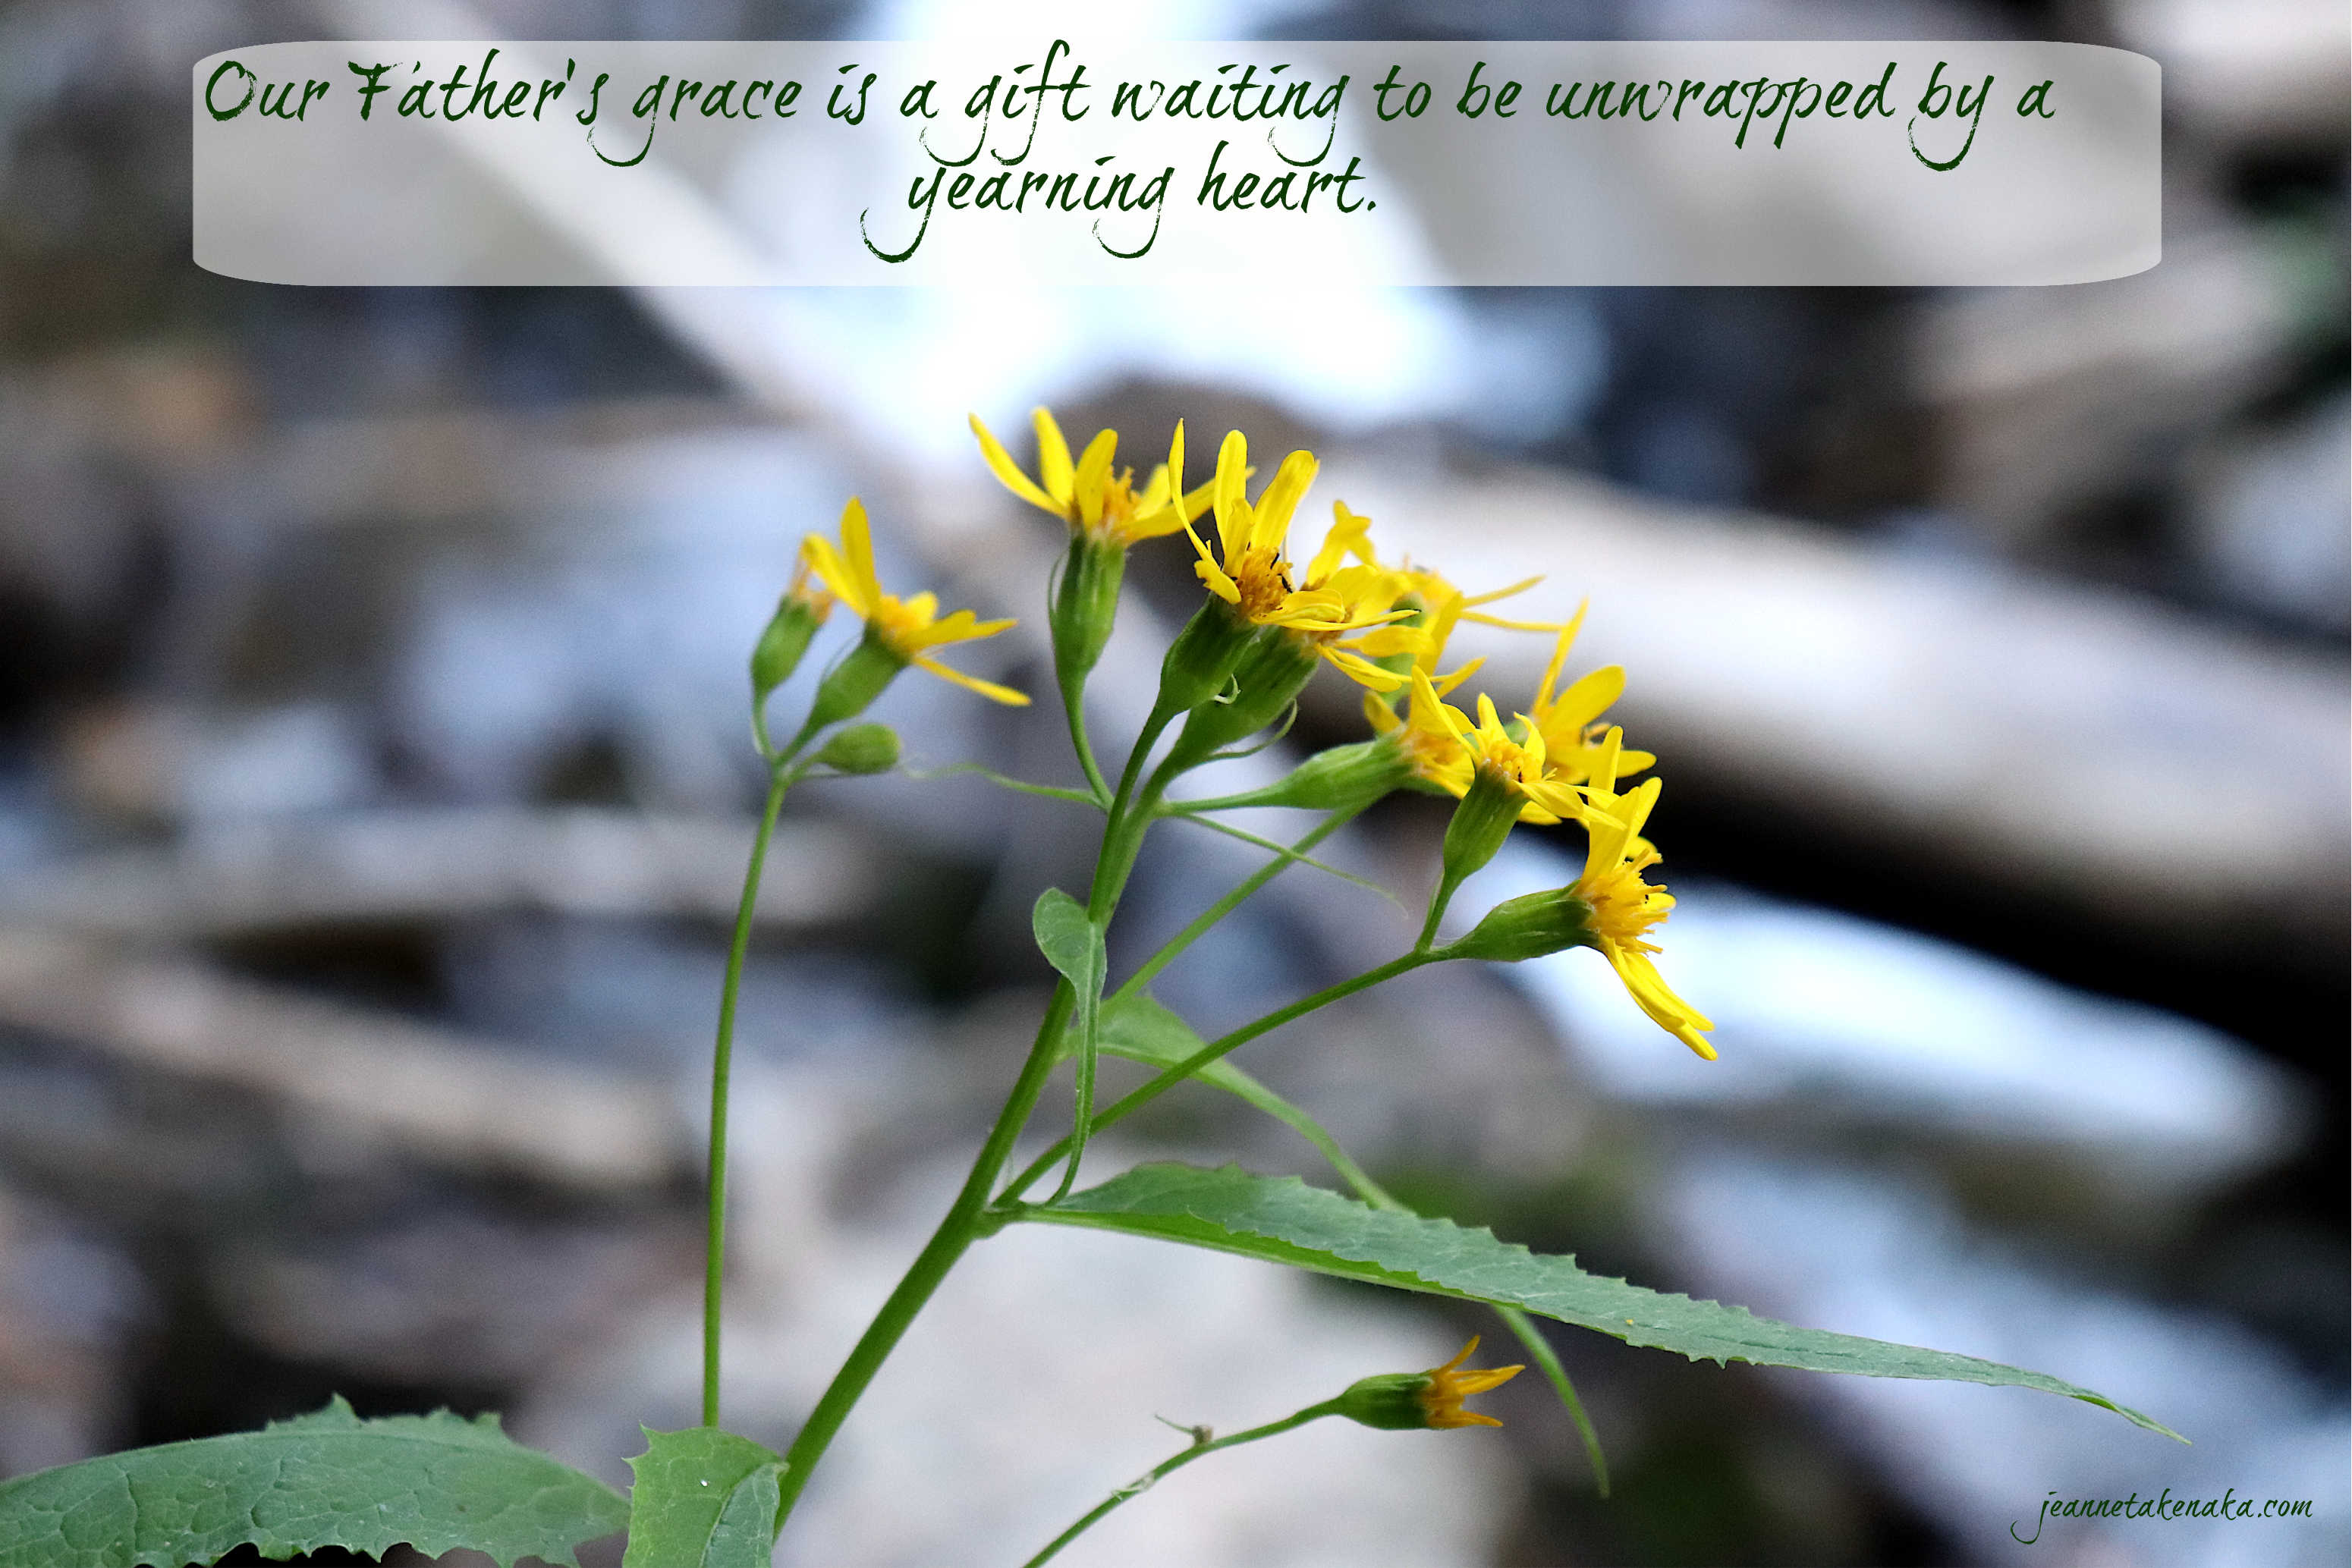 """Meme that says: """"Our Father's grace is a gift waiting to be unwrapped by a yearning heart."""" on a backdrop of yellow flowers and a blurred image of a waterfall."""